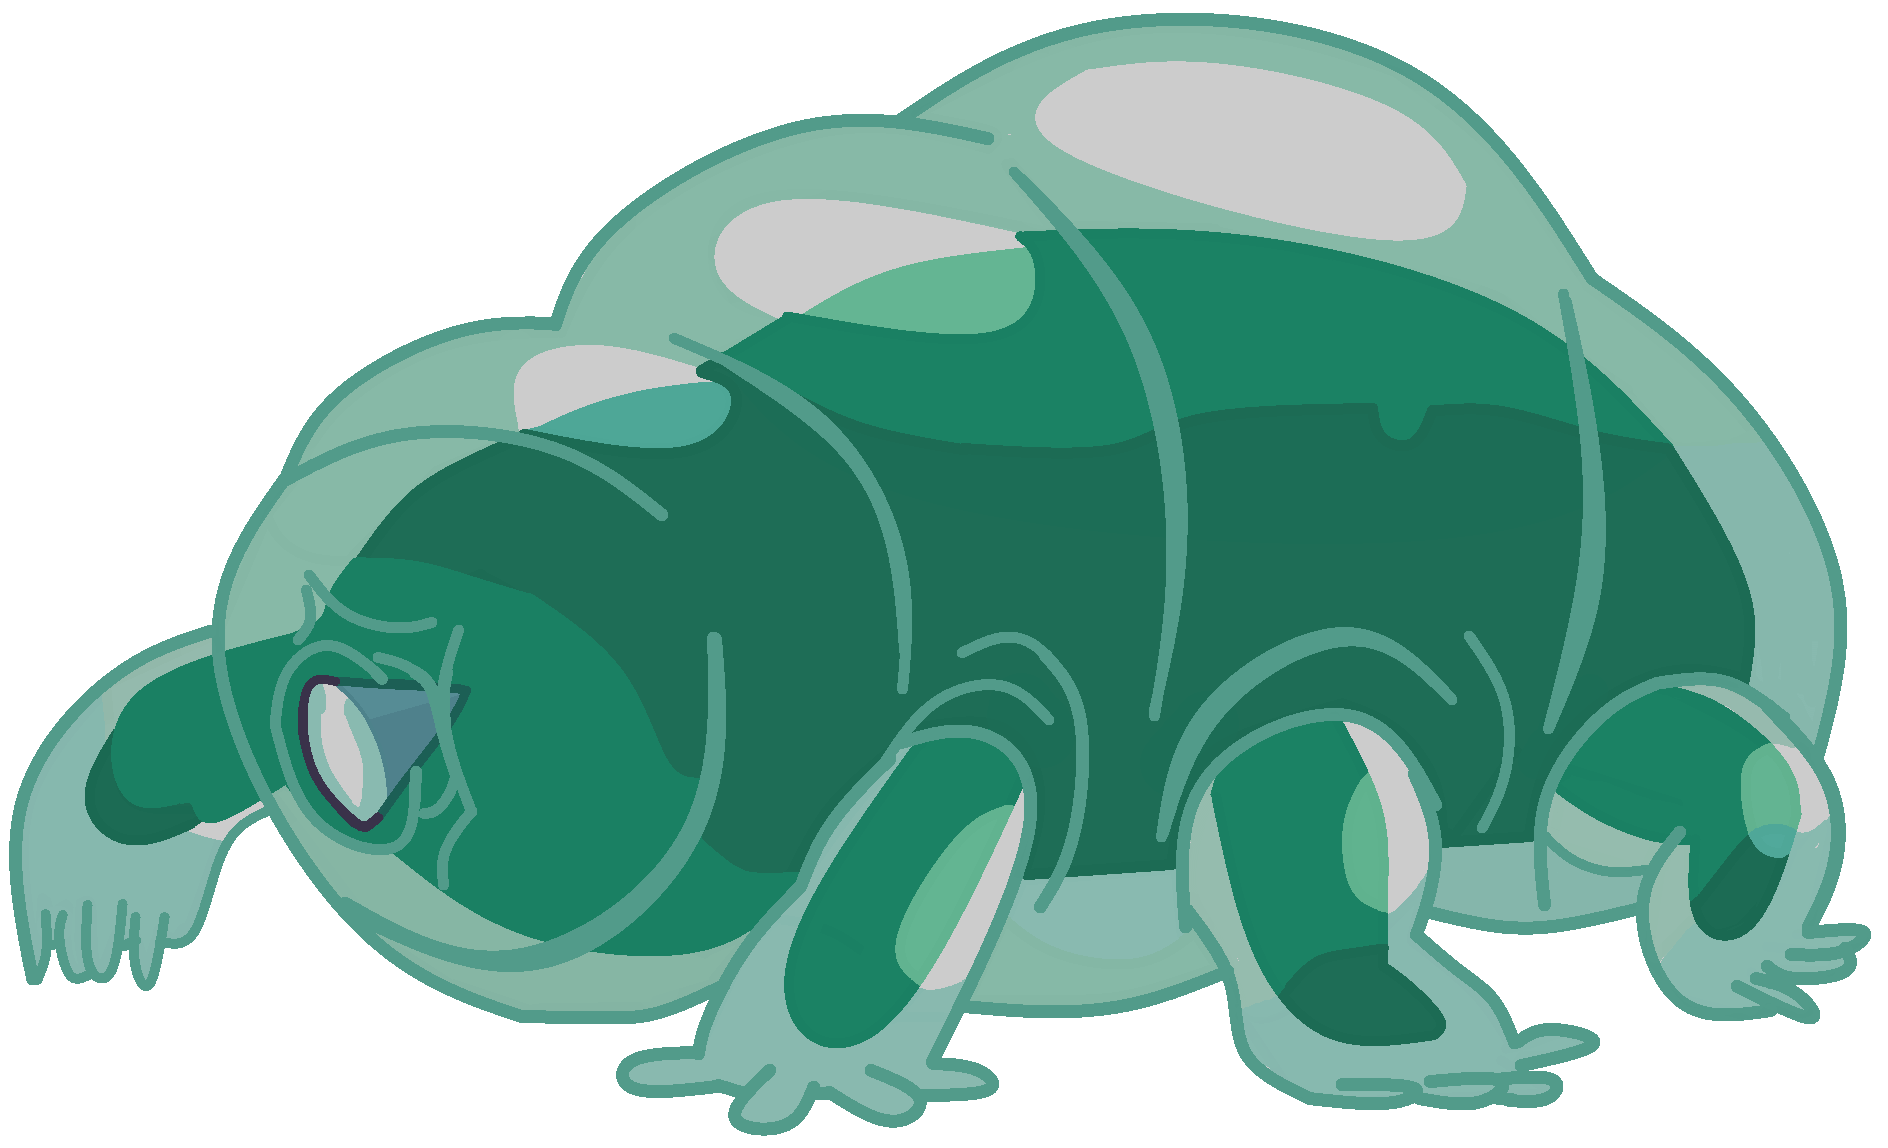 Image bearpng png steven. Water clipart character